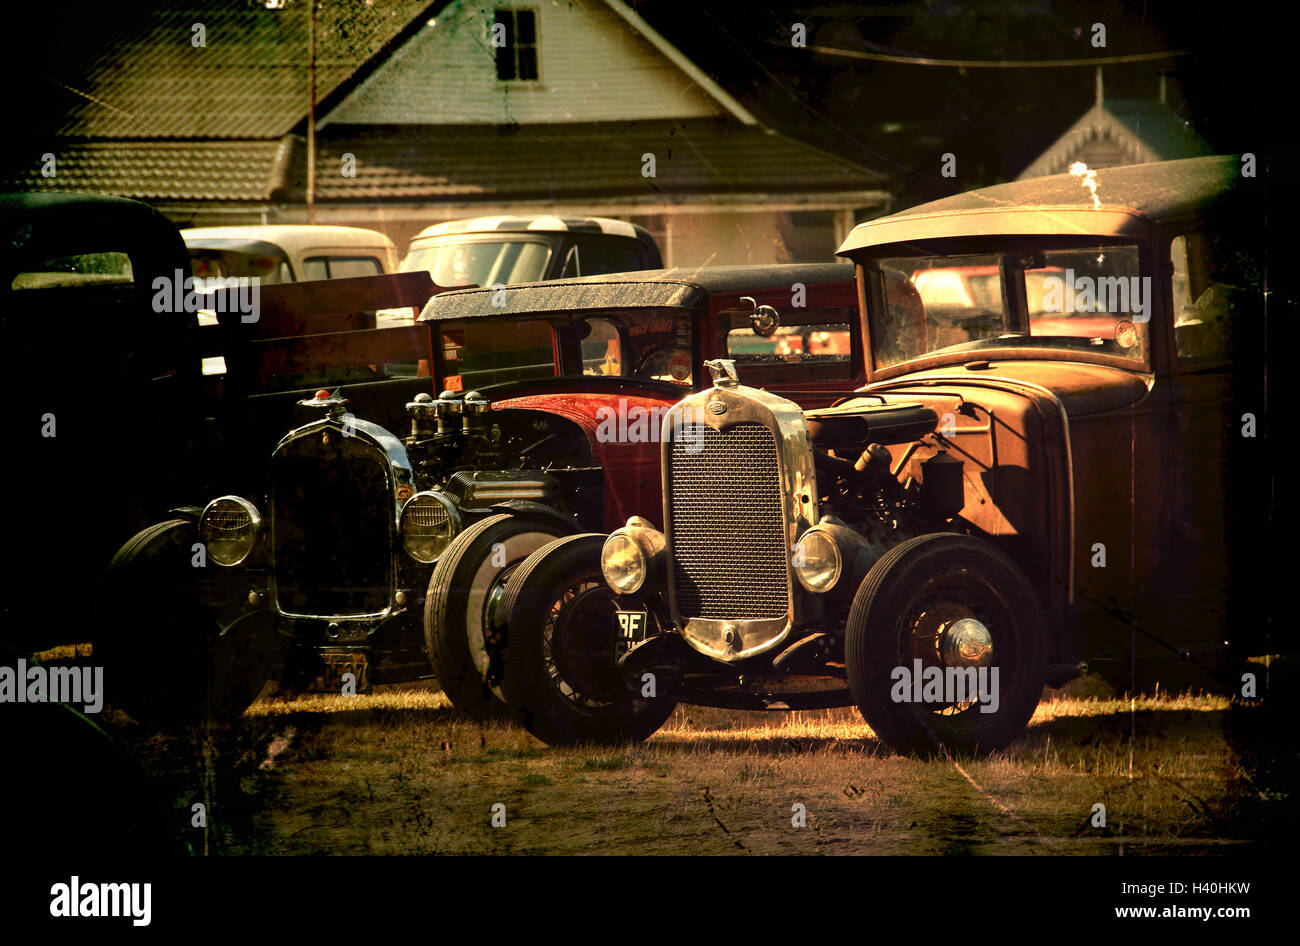 Model A Hot rods - Stock Image